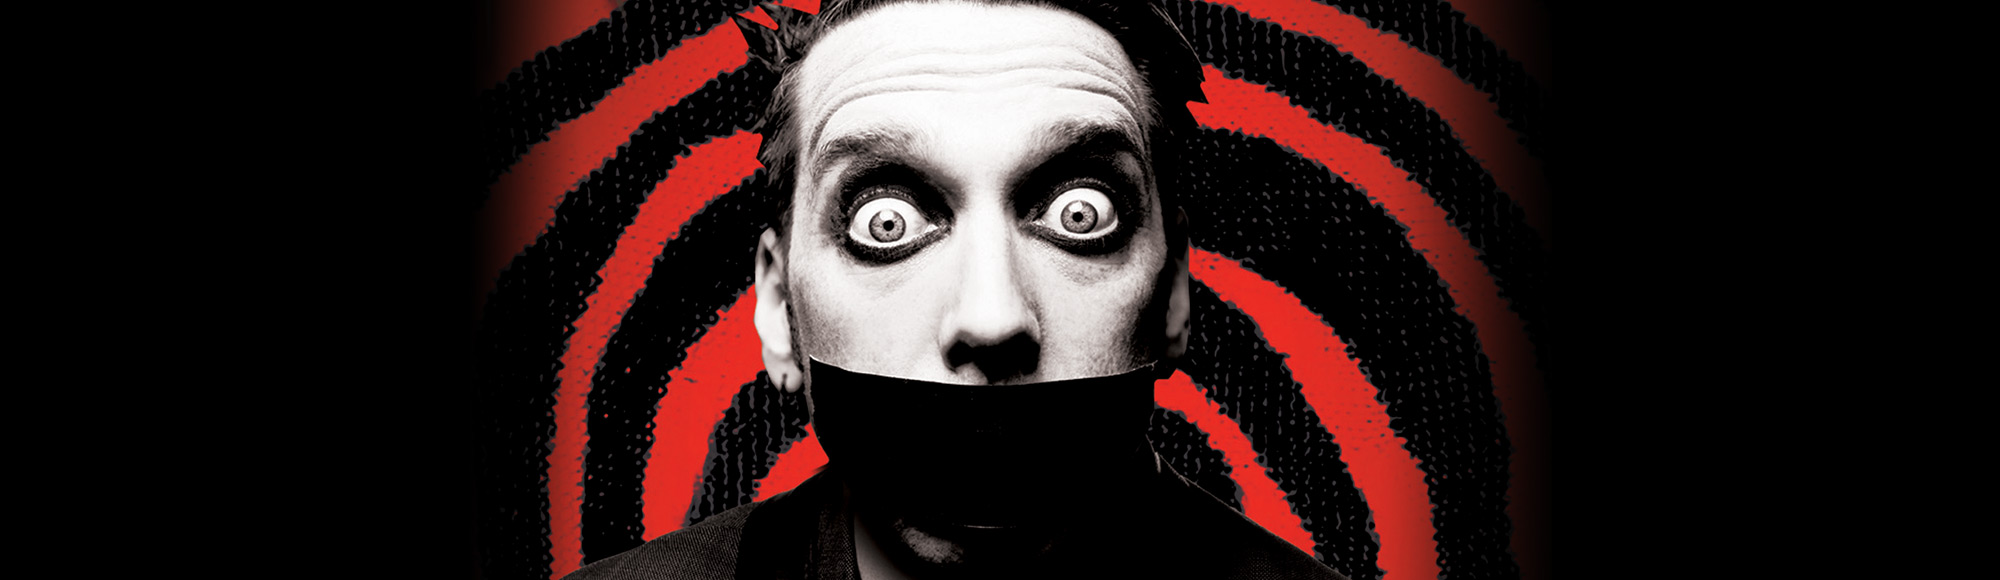 Tape Face show